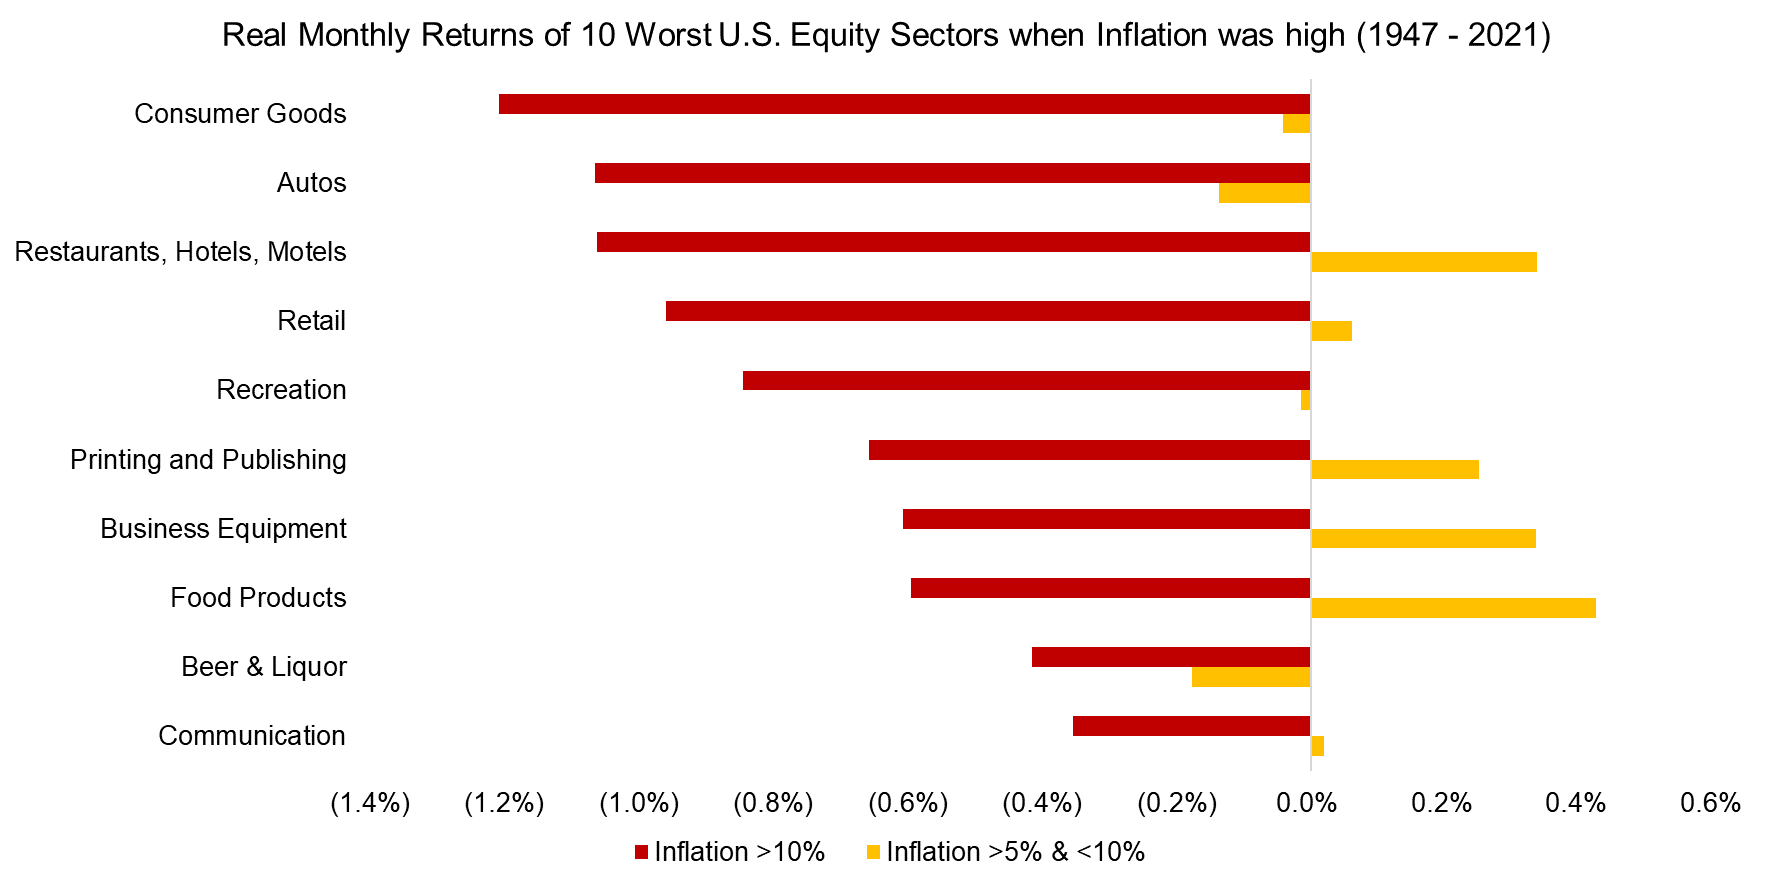 Real Monthly Returns of 10 Worst U.S. Equity Sectors when Inflation was high (1947 - 2021